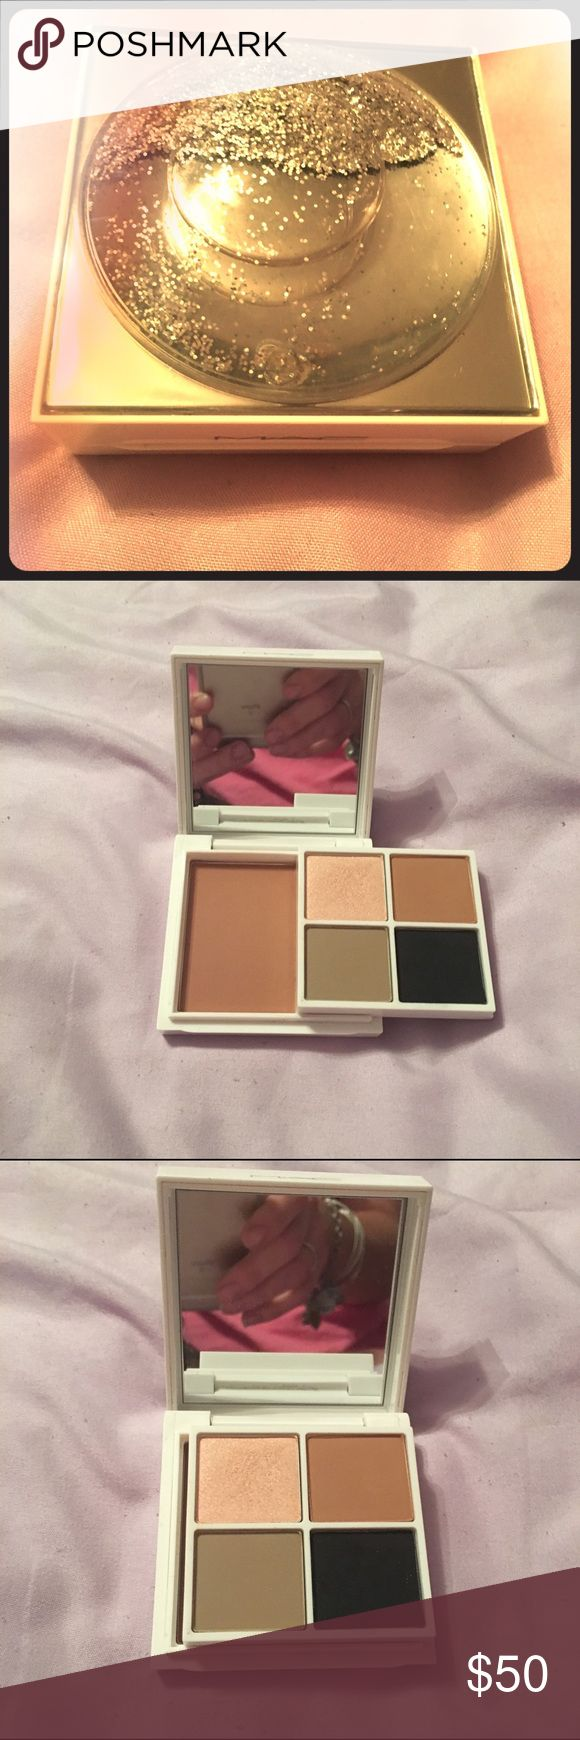 Mac makeup 4 eyeshadows and bronzer MAC Cosmetics Makeup Bronzer